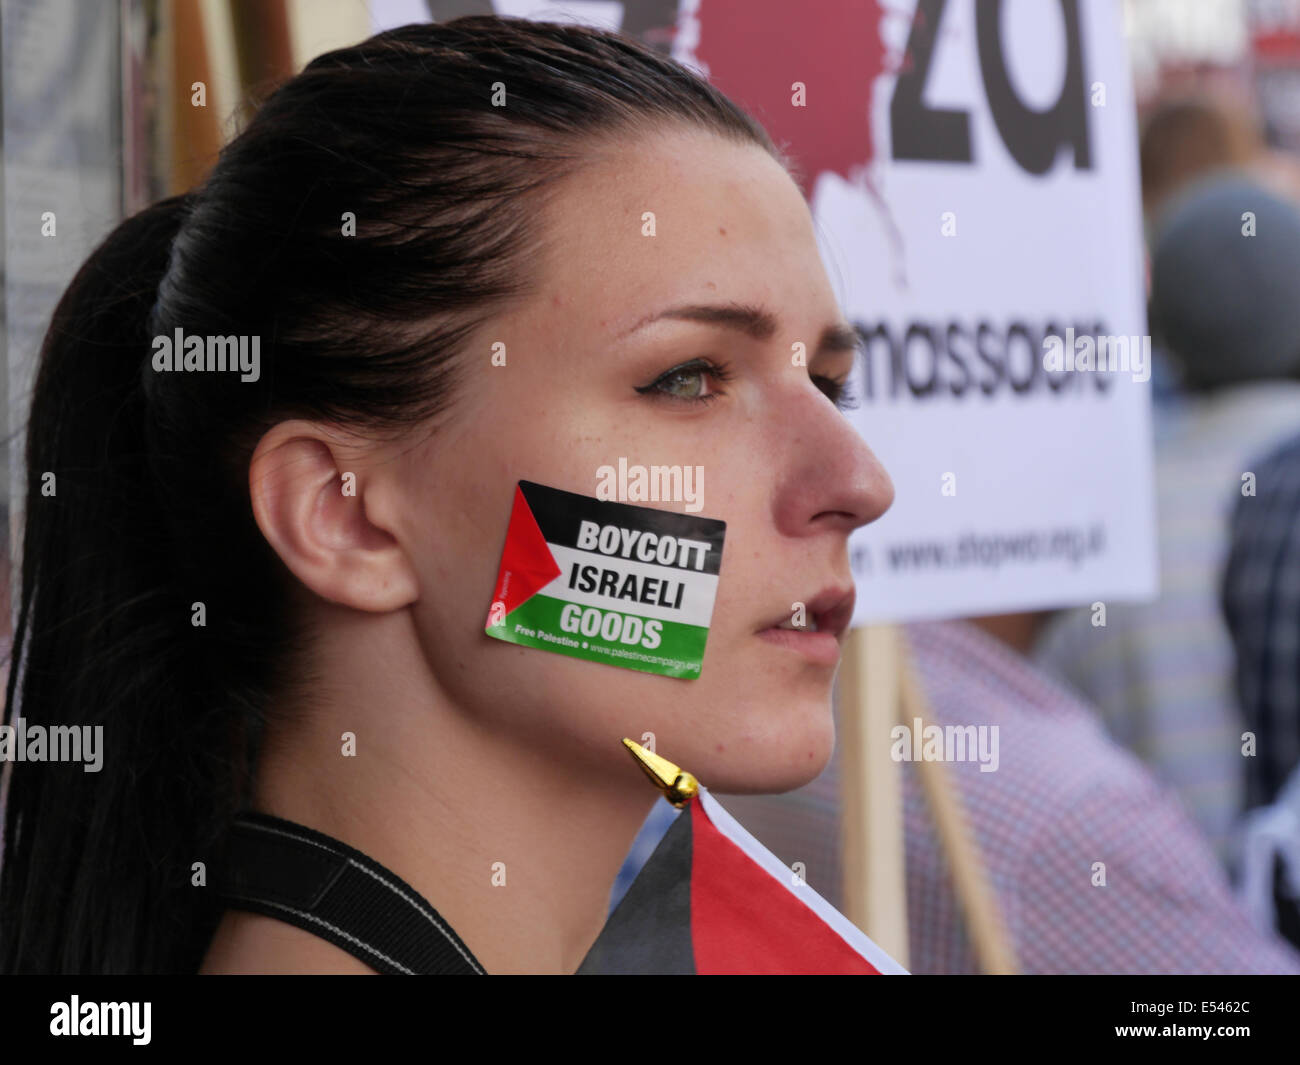 Boycott Israel Thousands of pro-Palestinian protesters gather opposite the Israeli Embassy in London.  July 2014 - Stock Image